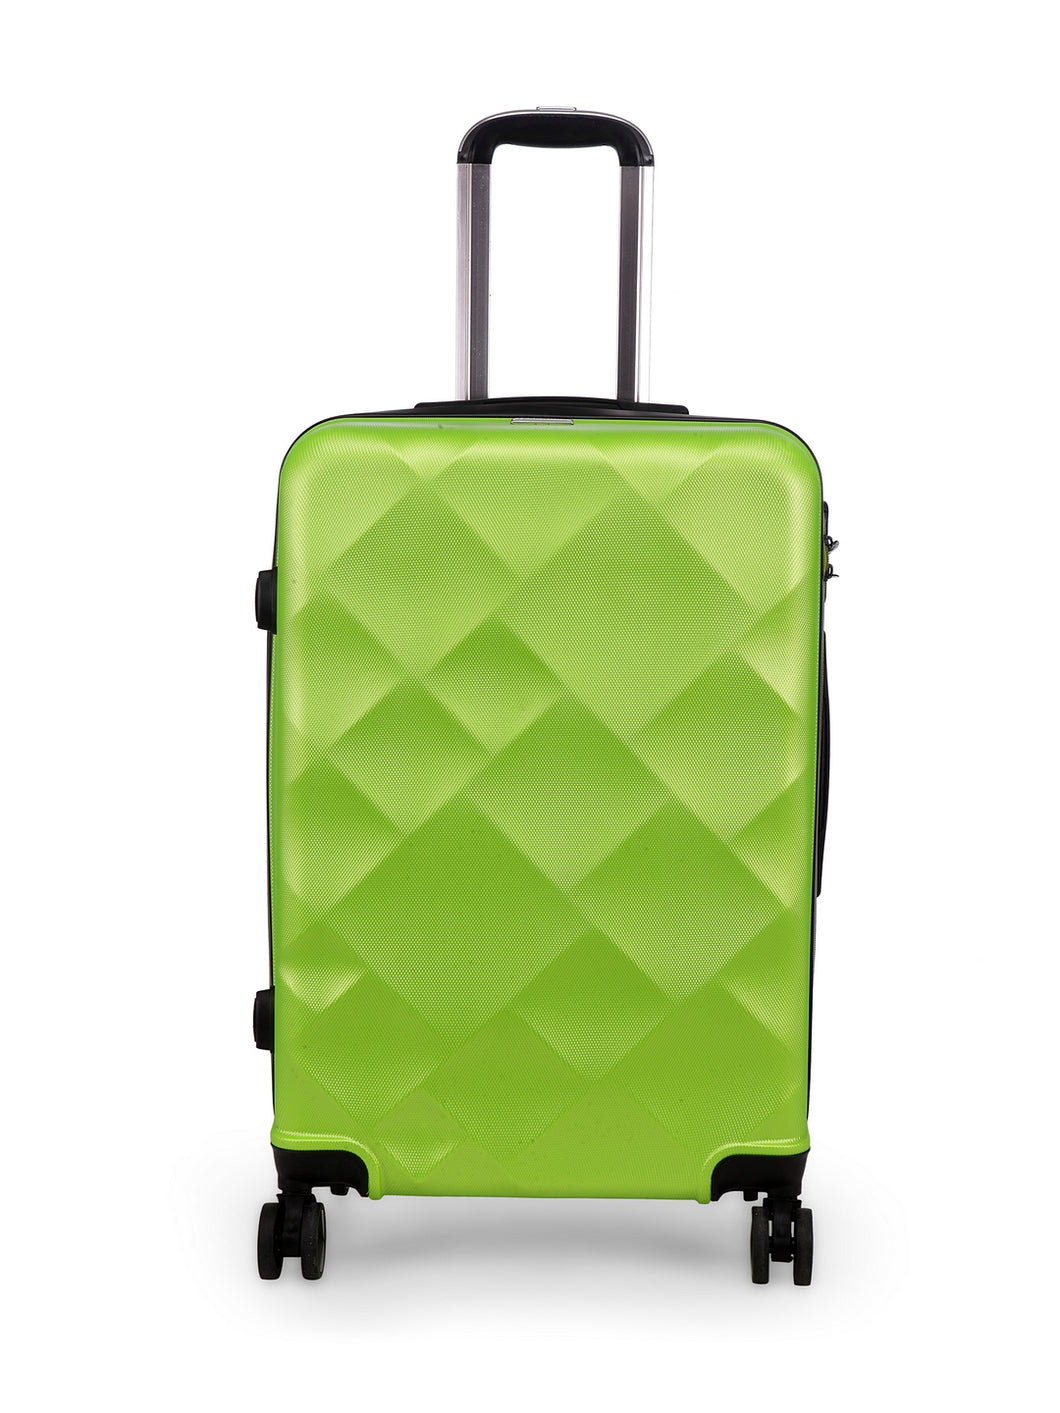 Unisex Green Textured Hard-Sided Medium Trolley Suitcase